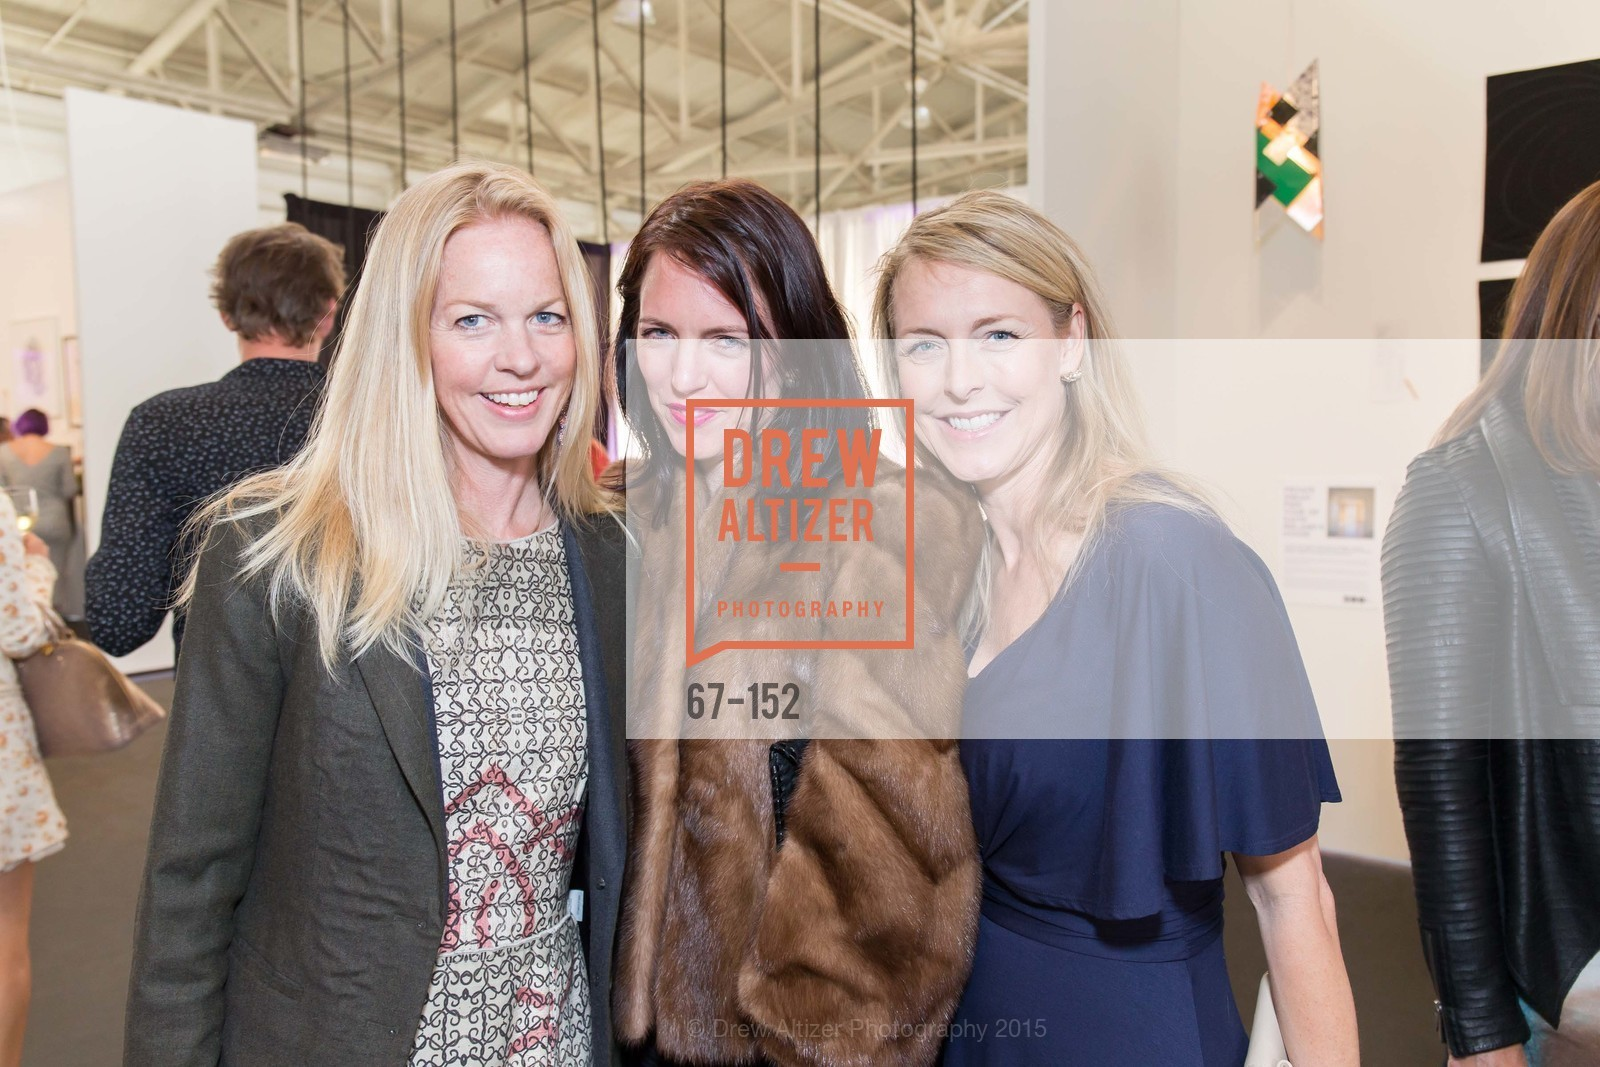 Christine Stovell, Tray Schlarb, Kate Chung, Headlands Center for the Arts Benefit Auction, Fort Mason Festival, Pavilon, June 2nd, 2015,Drew Altizer, Drew Altizer Photography, full-service agency, private events, San Francisco photographer, photographer california